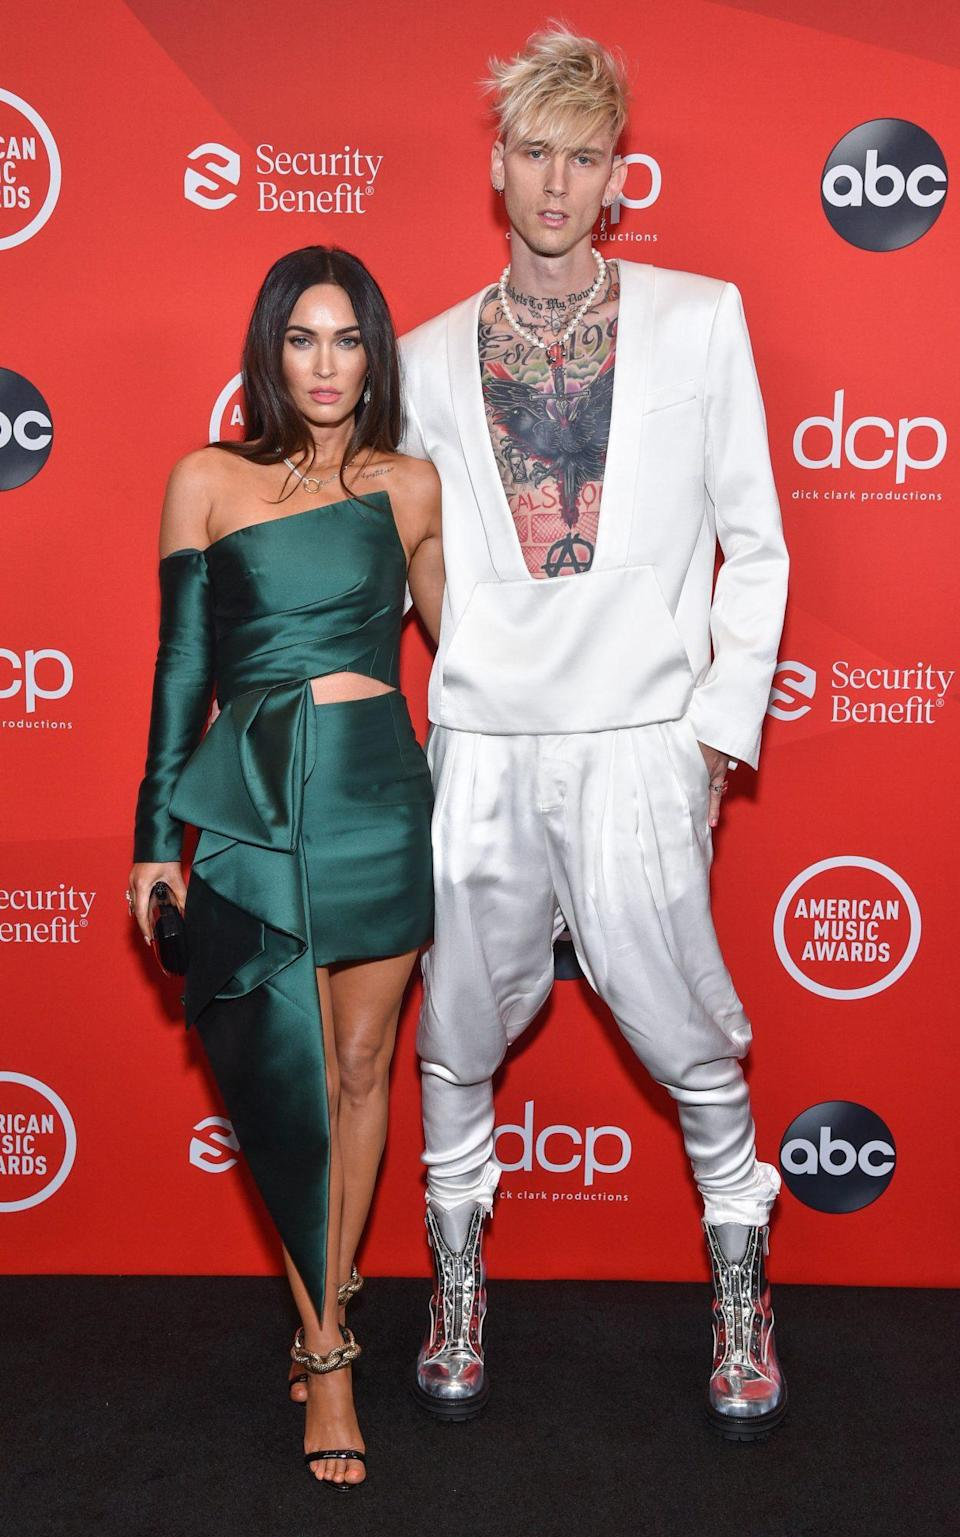 <p>Megan Fox's asymmetrical, emerald-green, one-sleeved mini almost got outshined by her beau Machine Gun Kelly's hybrid hoodie-tuxedo and futuristic metallic high-tops. Almost. </p>